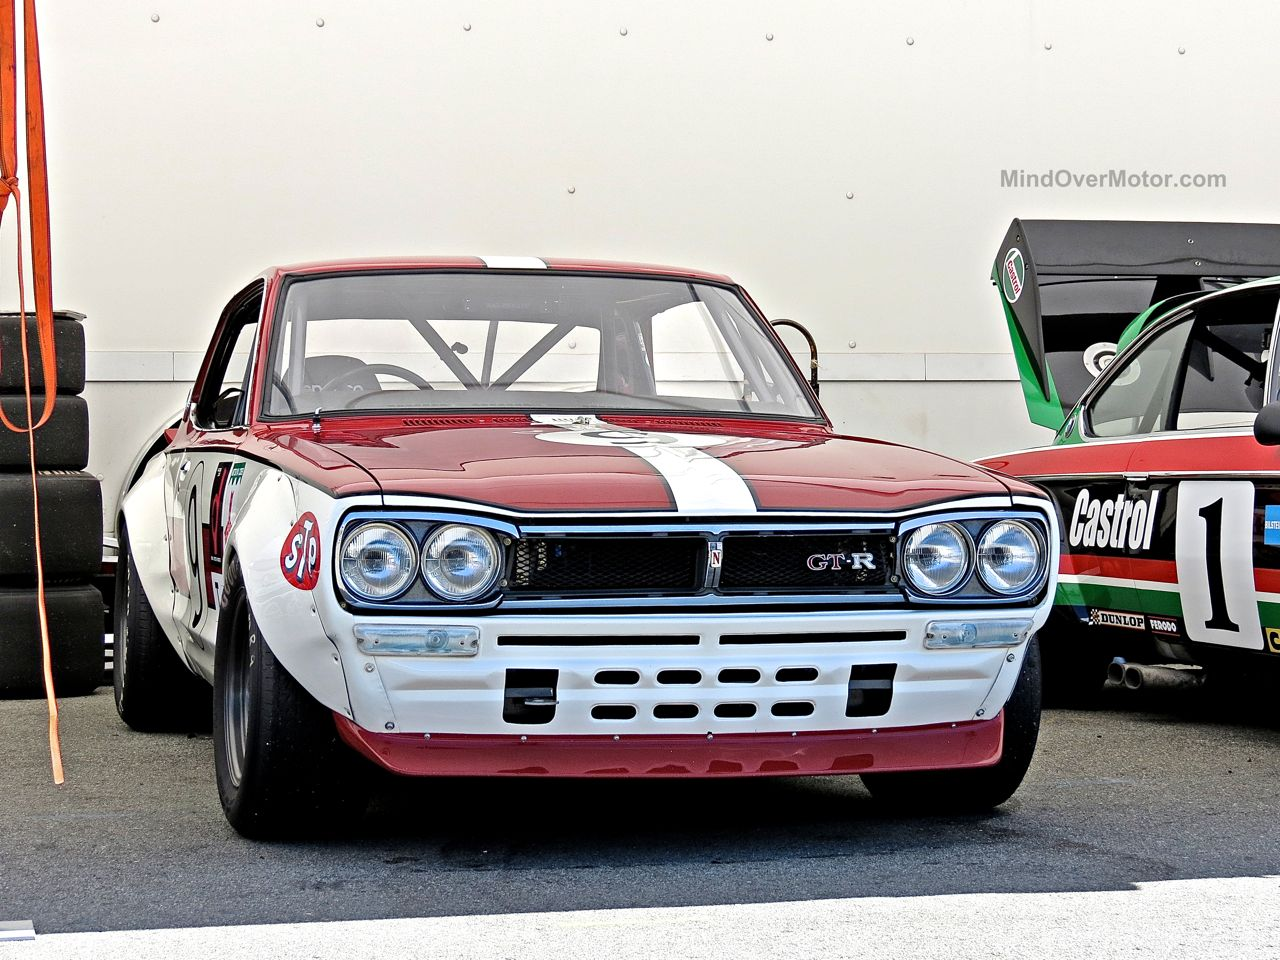 1971 Nissan Skyline 2000GT-R Hakosuka Race Car at Laguna Seca